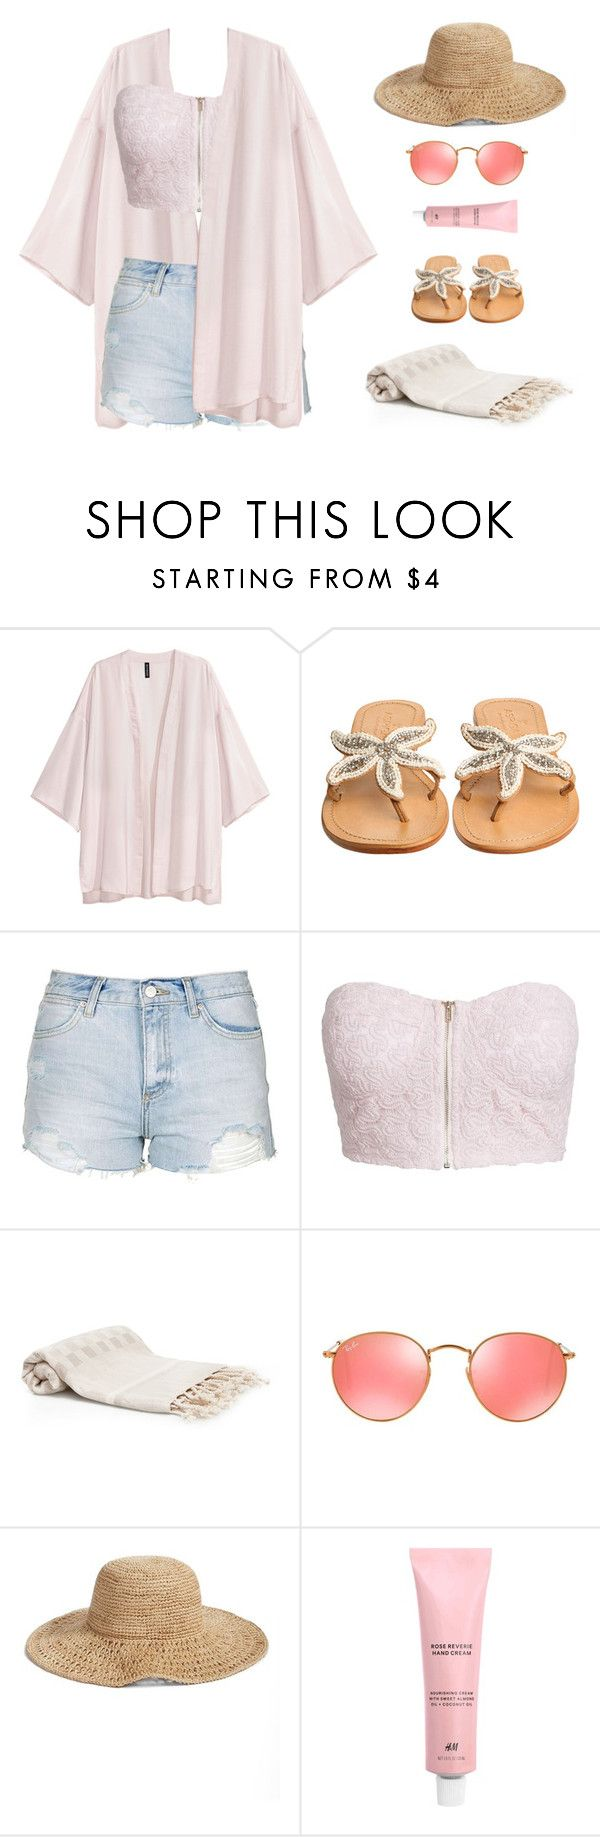 """Untitled #230"" by fikanur4 ❤ liked on Polyvore featuring ASPIGA, Topshop, NLY Trend, Ray-Ban and Nordstrom"